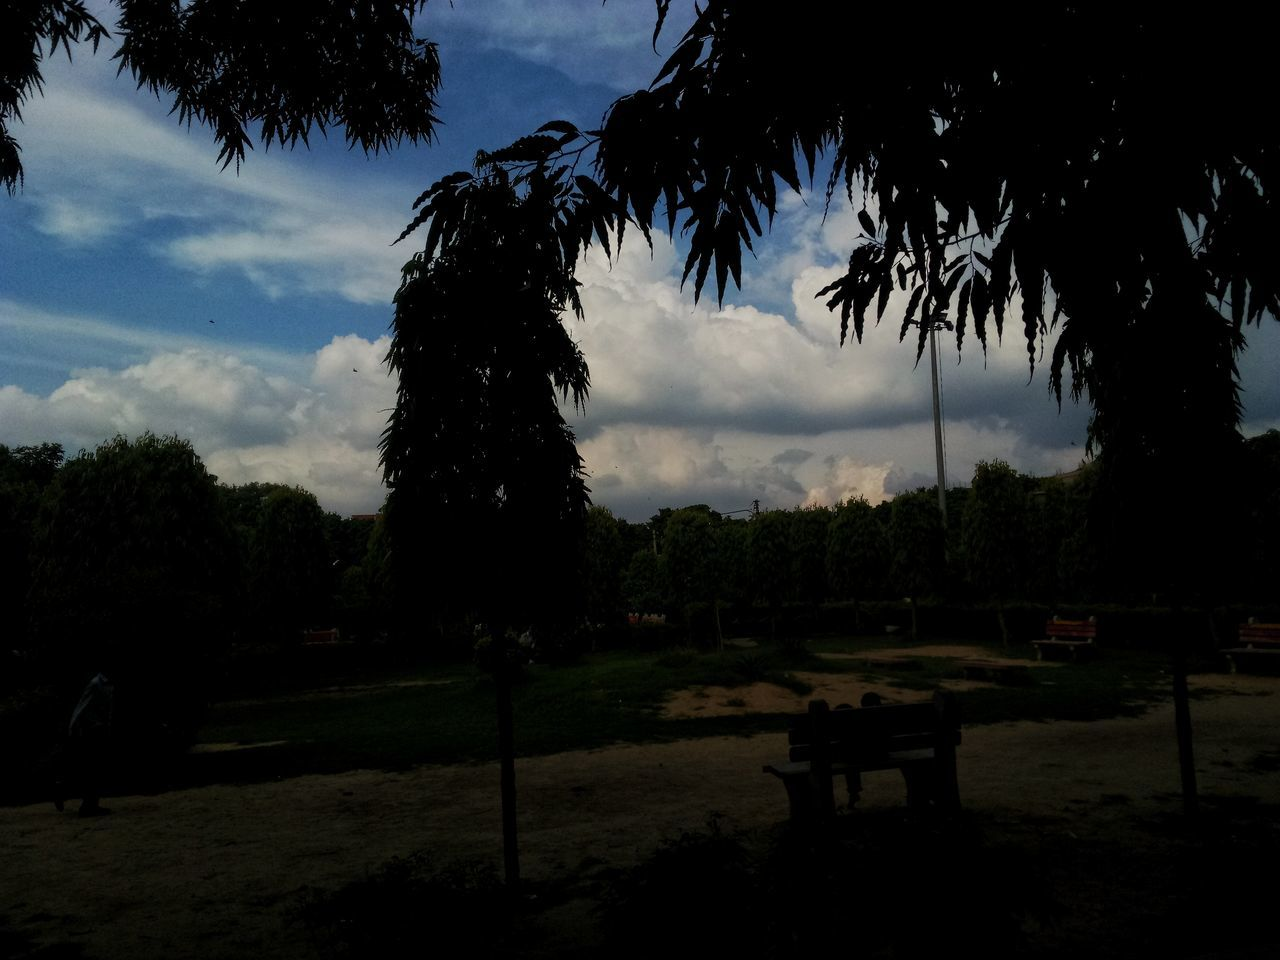 tree, sky, cloud - sky, tranquility, palm tree, no people, nature, outdoors, beauty in nature, scenics, growth, day, grass